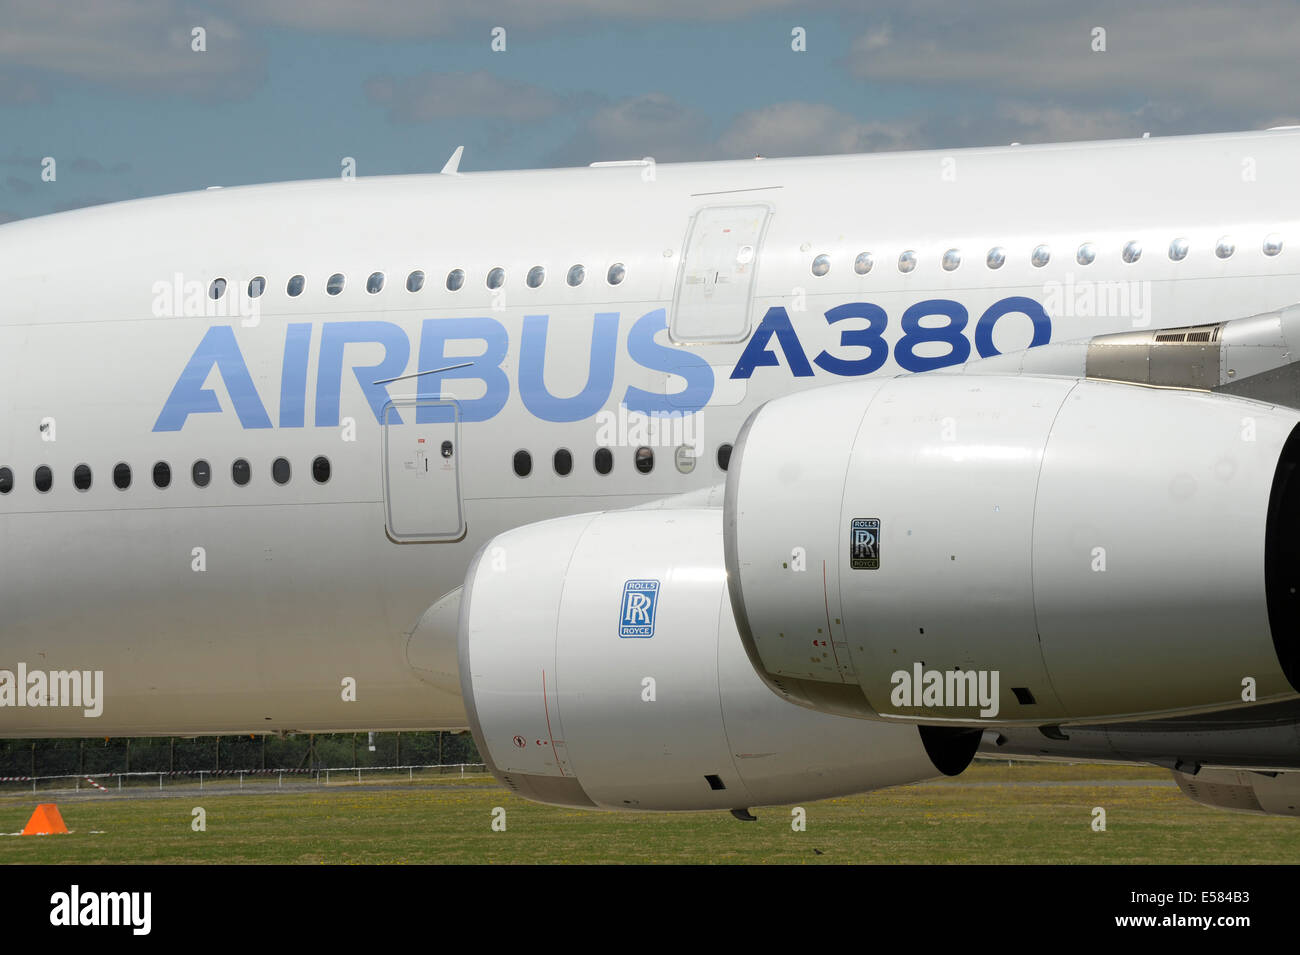 Airbus A380 engines and fuselage detail - Stock Image